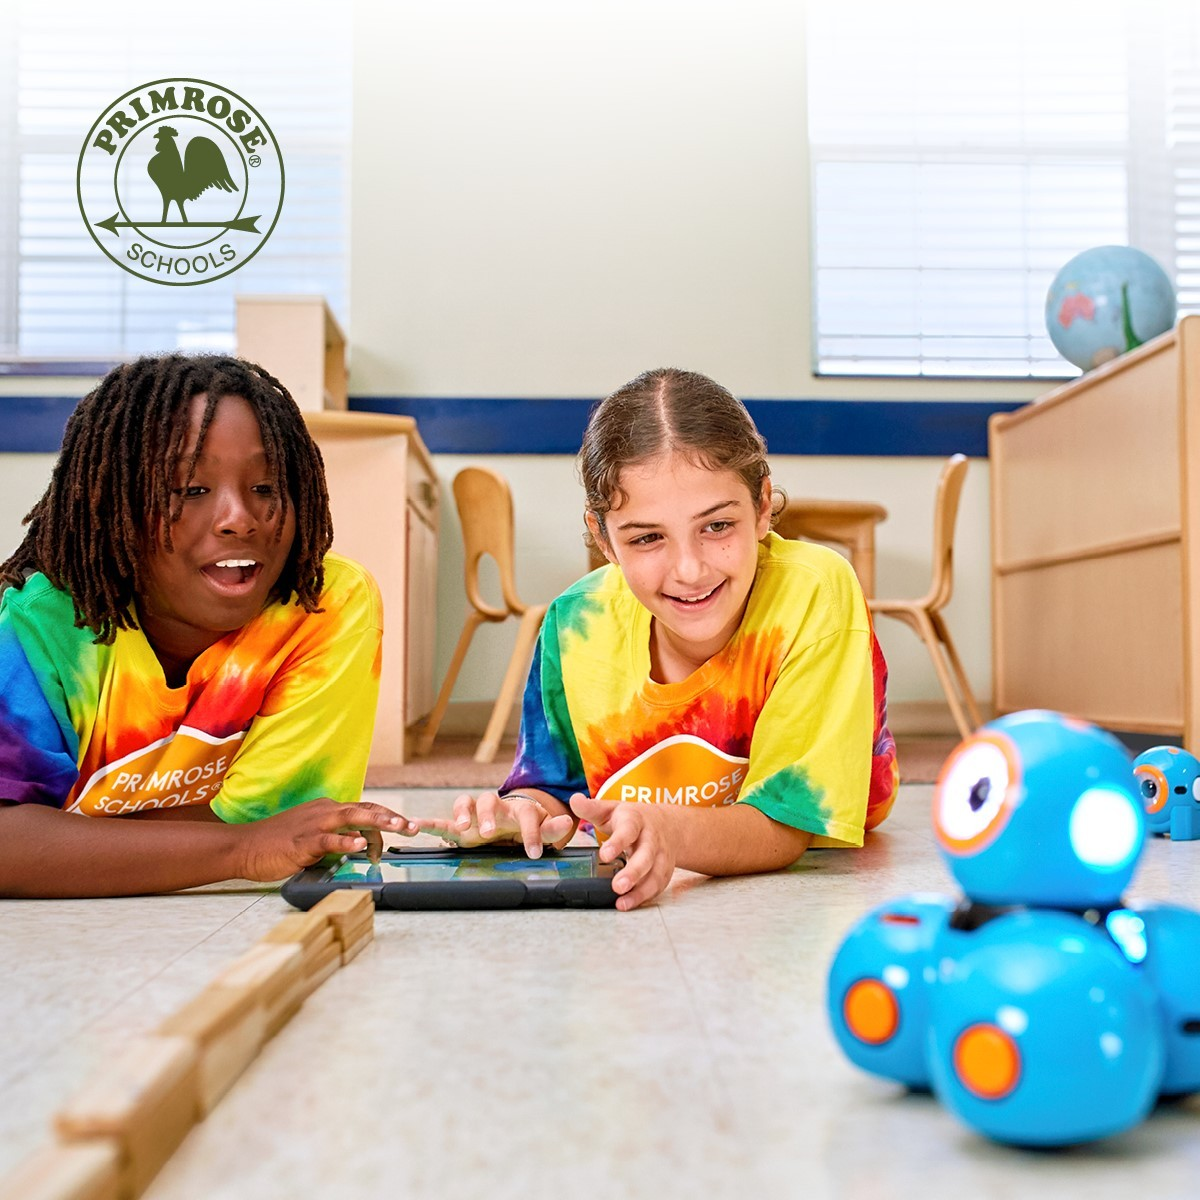 two Explorer students driving a robot through the classroom